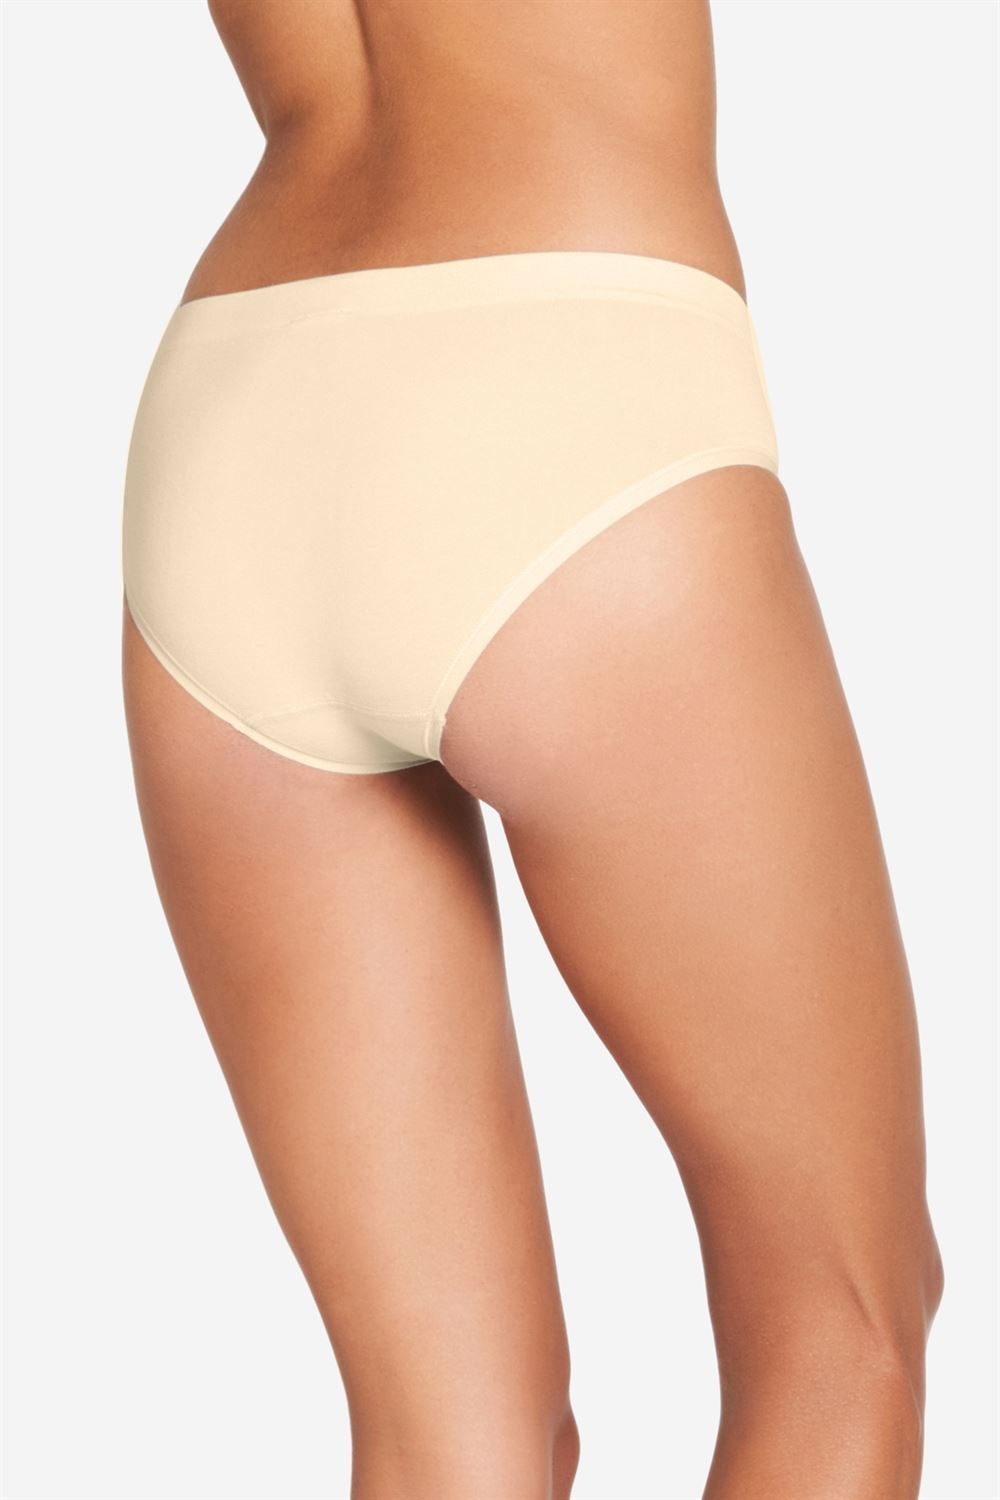 Nude Maternity panties in soft bamboo fibres - Organically grown - seen from behind